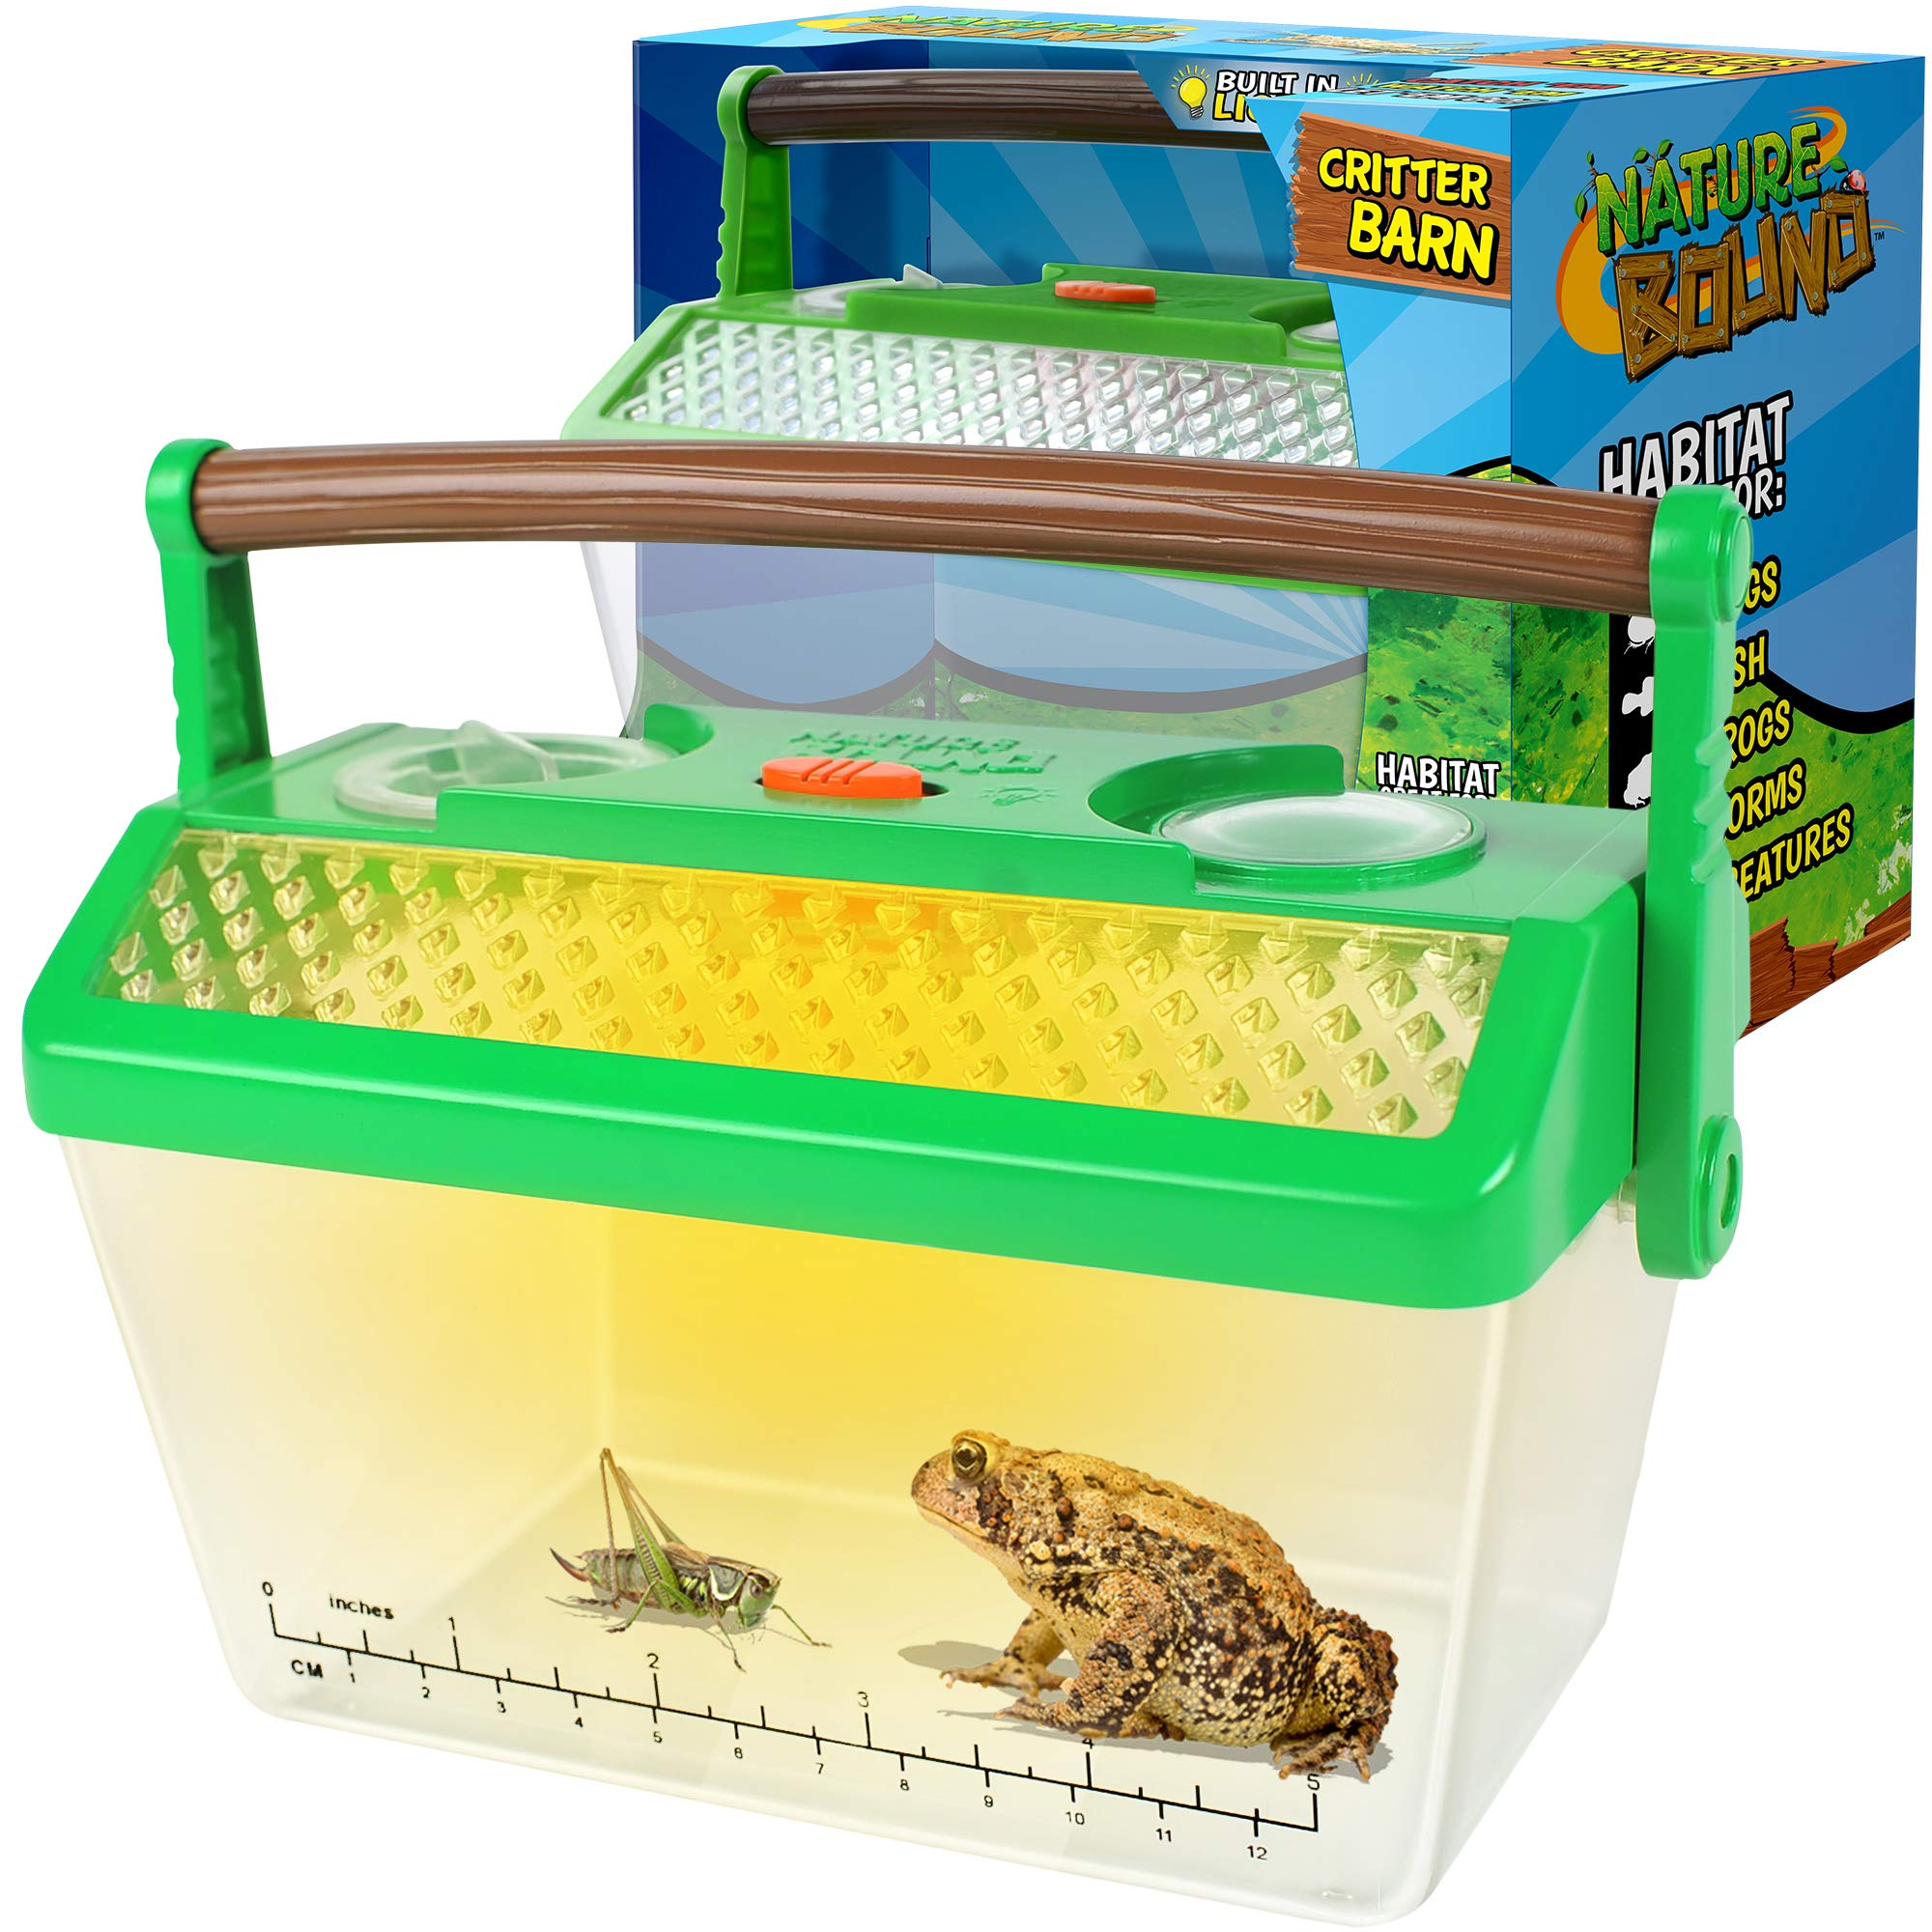 Nature Bound Bug Catcher Critter Barn Habitat for Indoor/Outdoor Insect Collecting with Light Kit, White